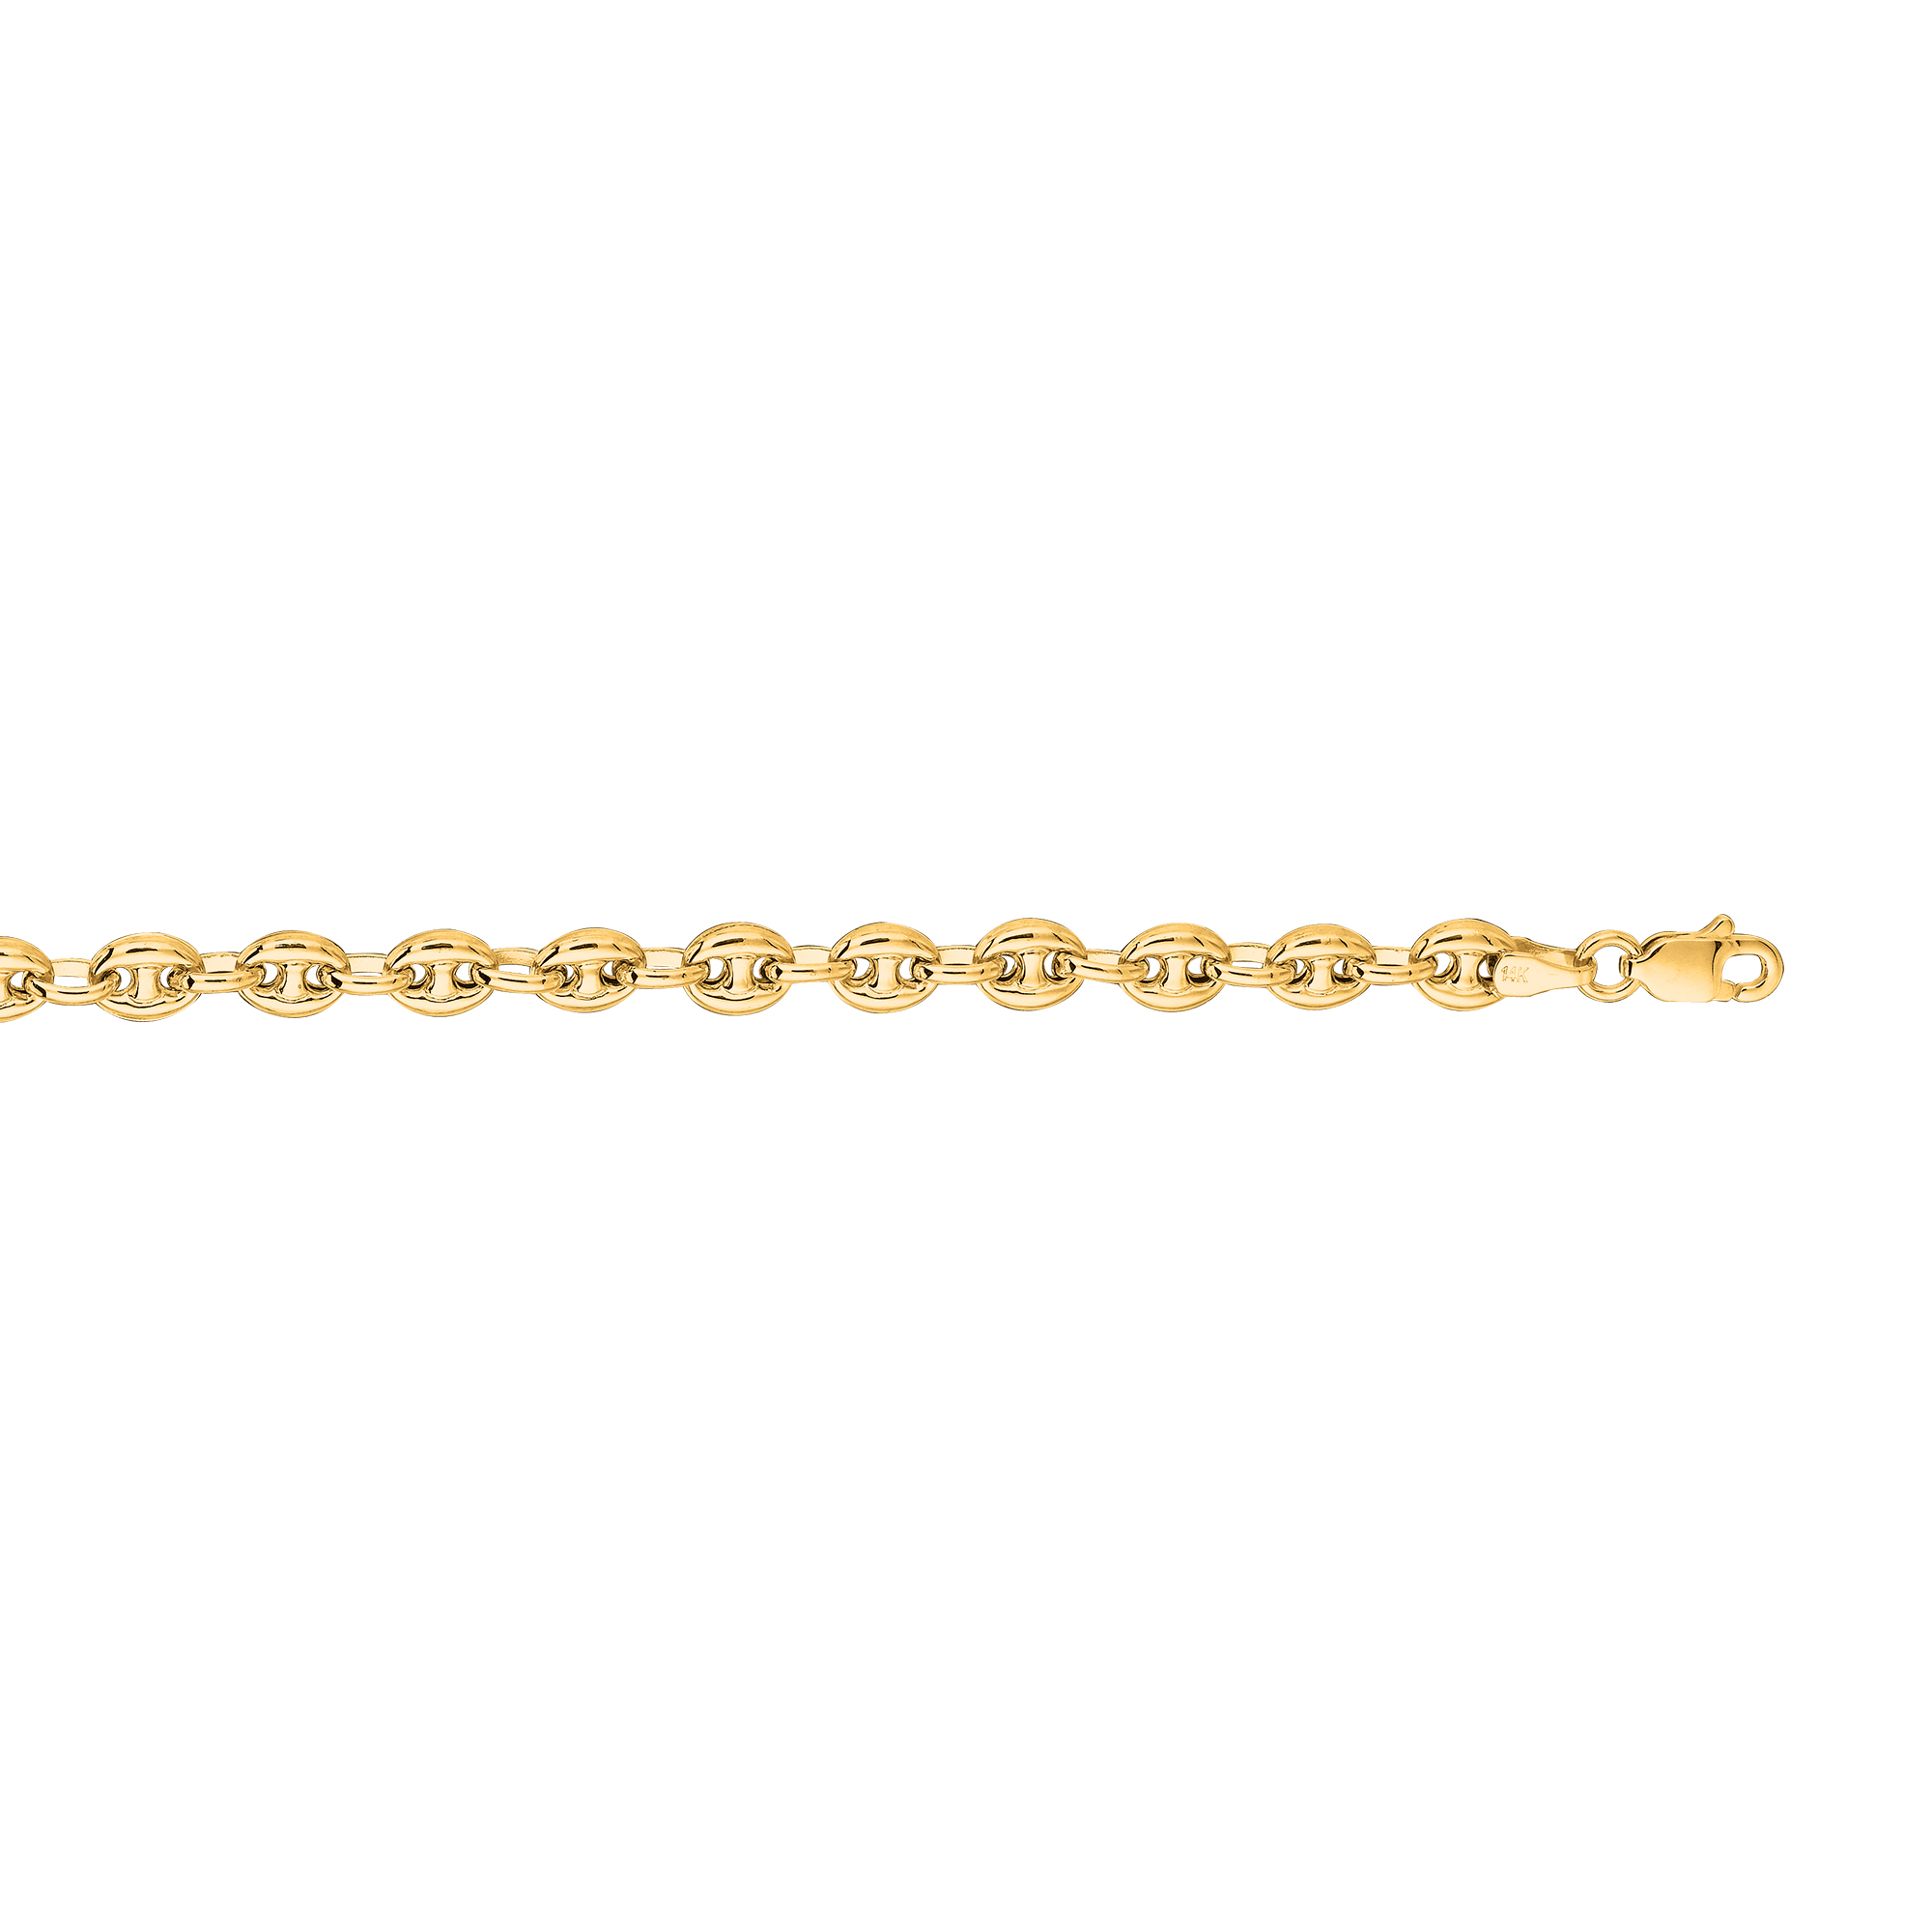 Hollow 14k Gold Gucci Chain For Men & Women Mariner Puffed 4.5mm Wide Yellow Image